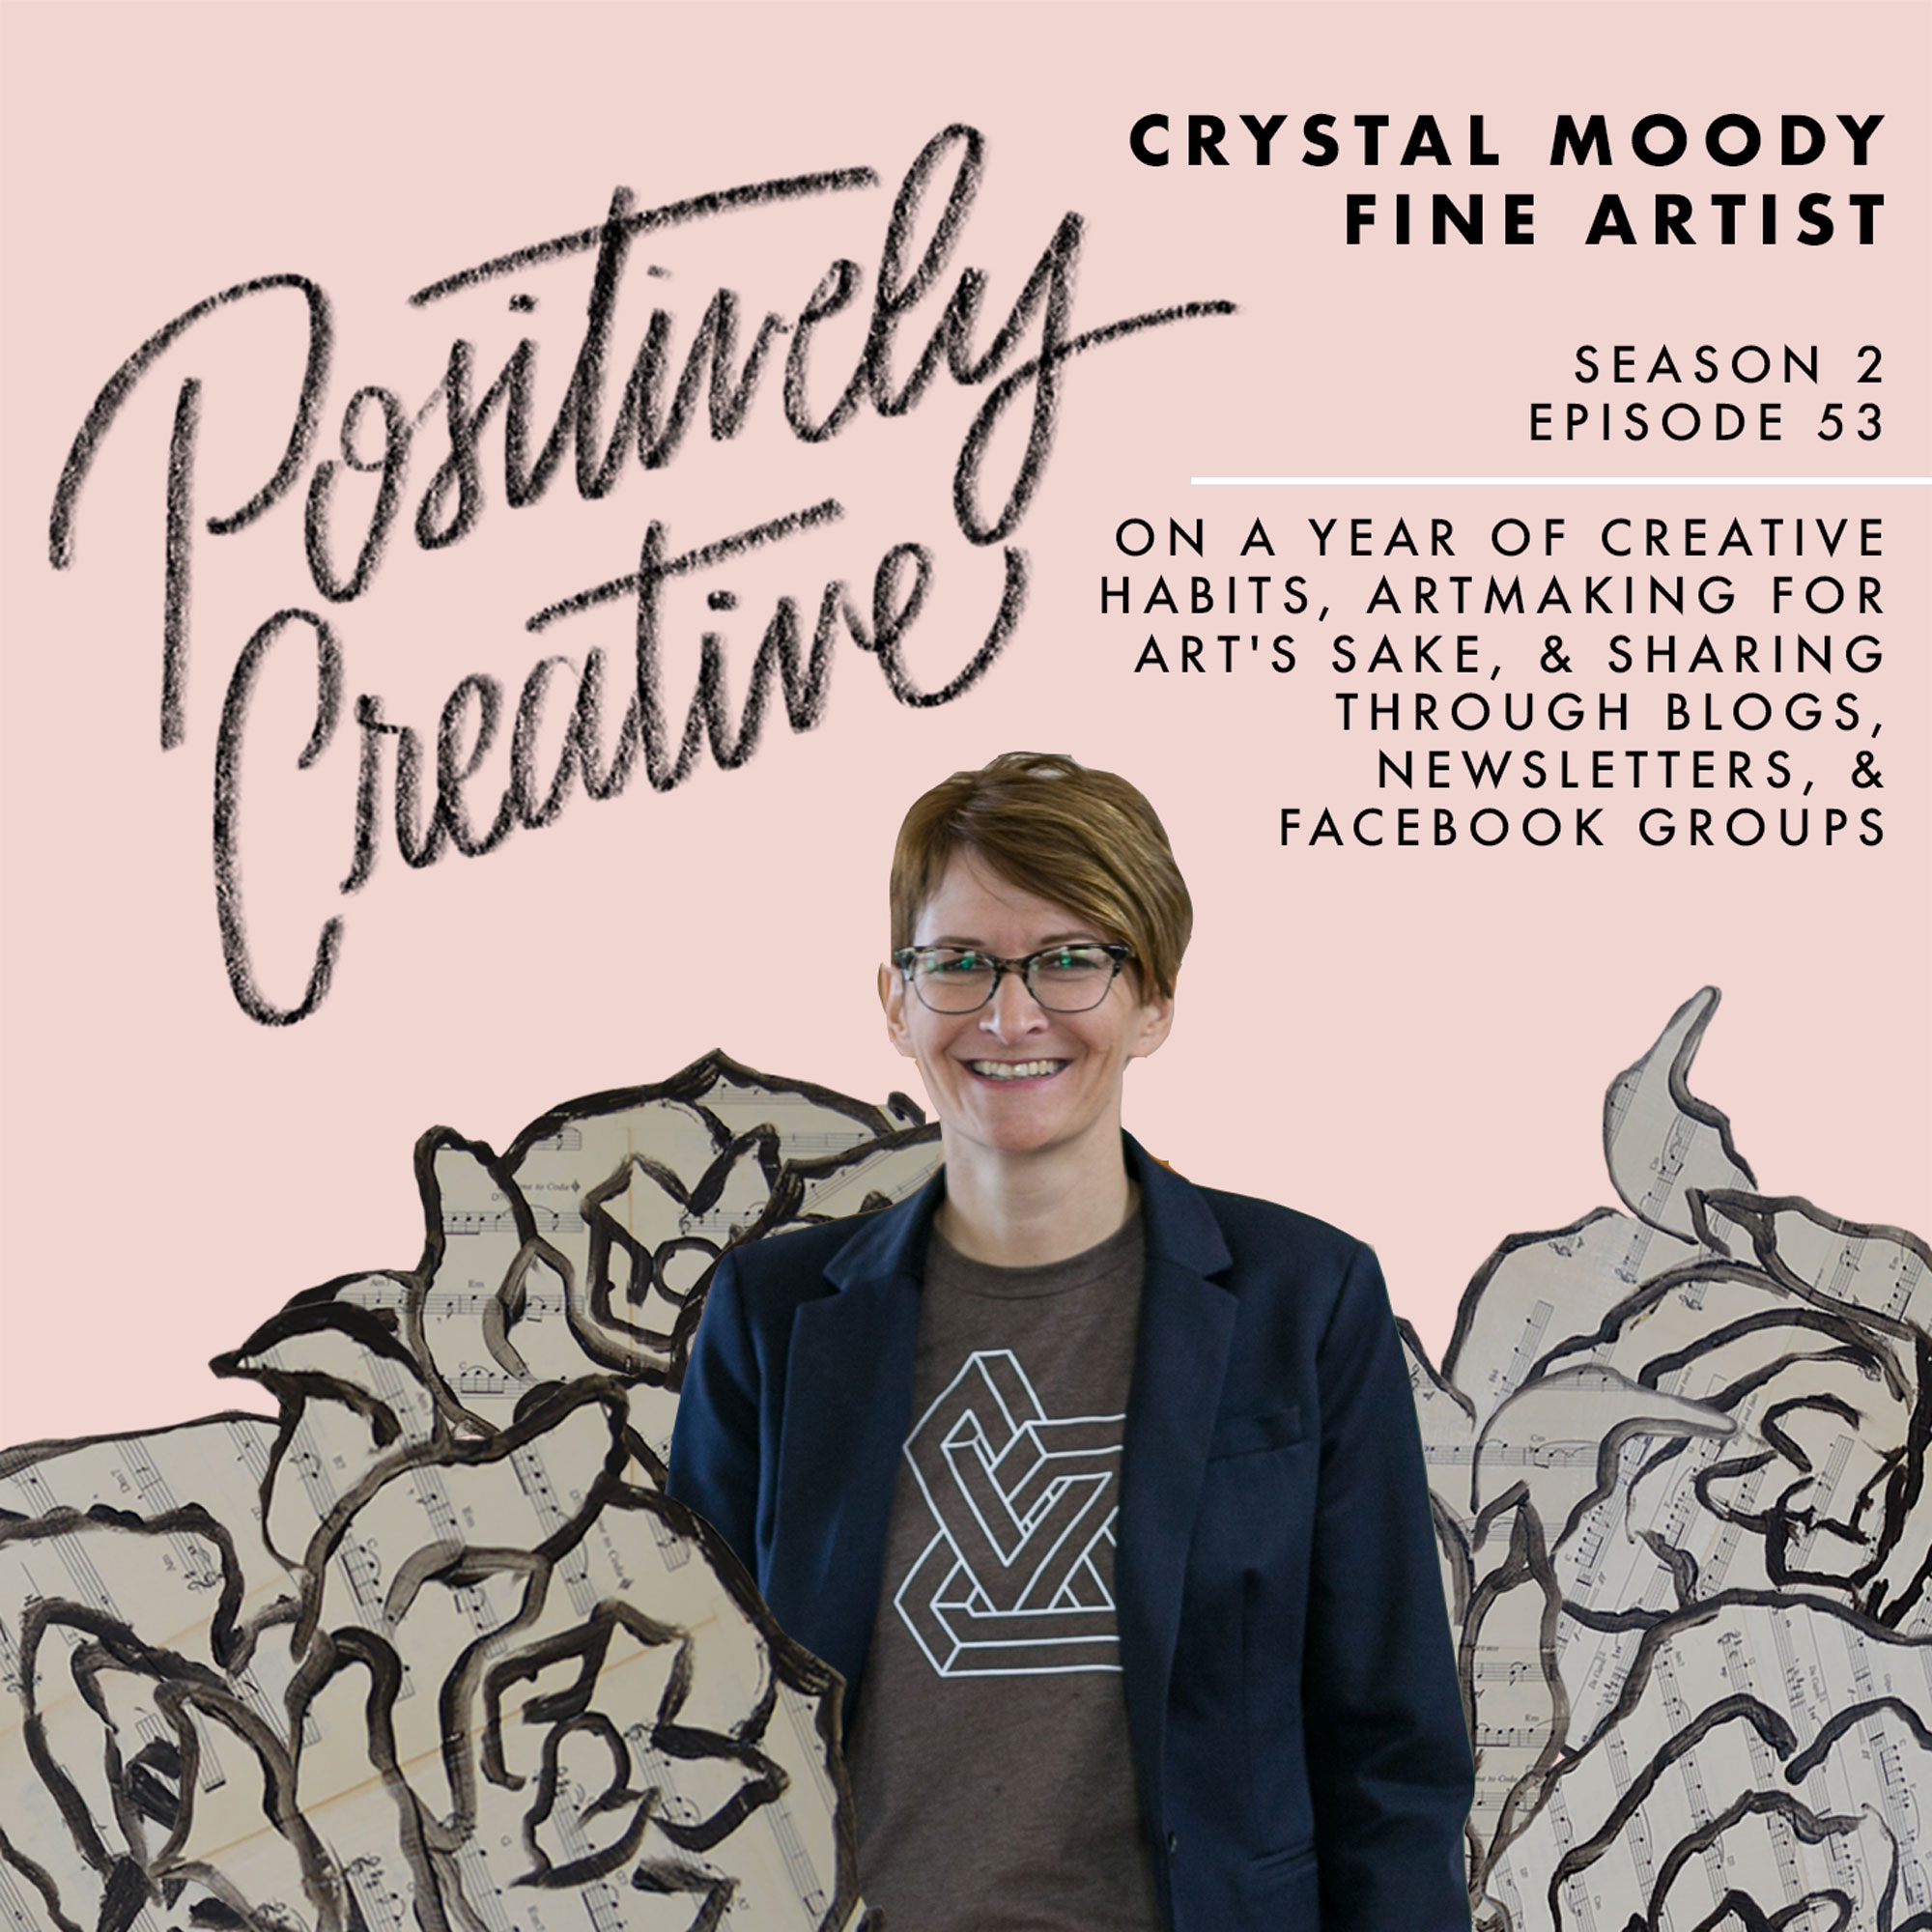 S2-Ep-53---Crystal-Moody,-Fine-Artist,-on-a-Year-of-Creative-Habits,-Artmaking-for-Art's-Sake,-&-Sharing-Through-Blogs,-Newsletters,-&-Facebook-Groups.jpg